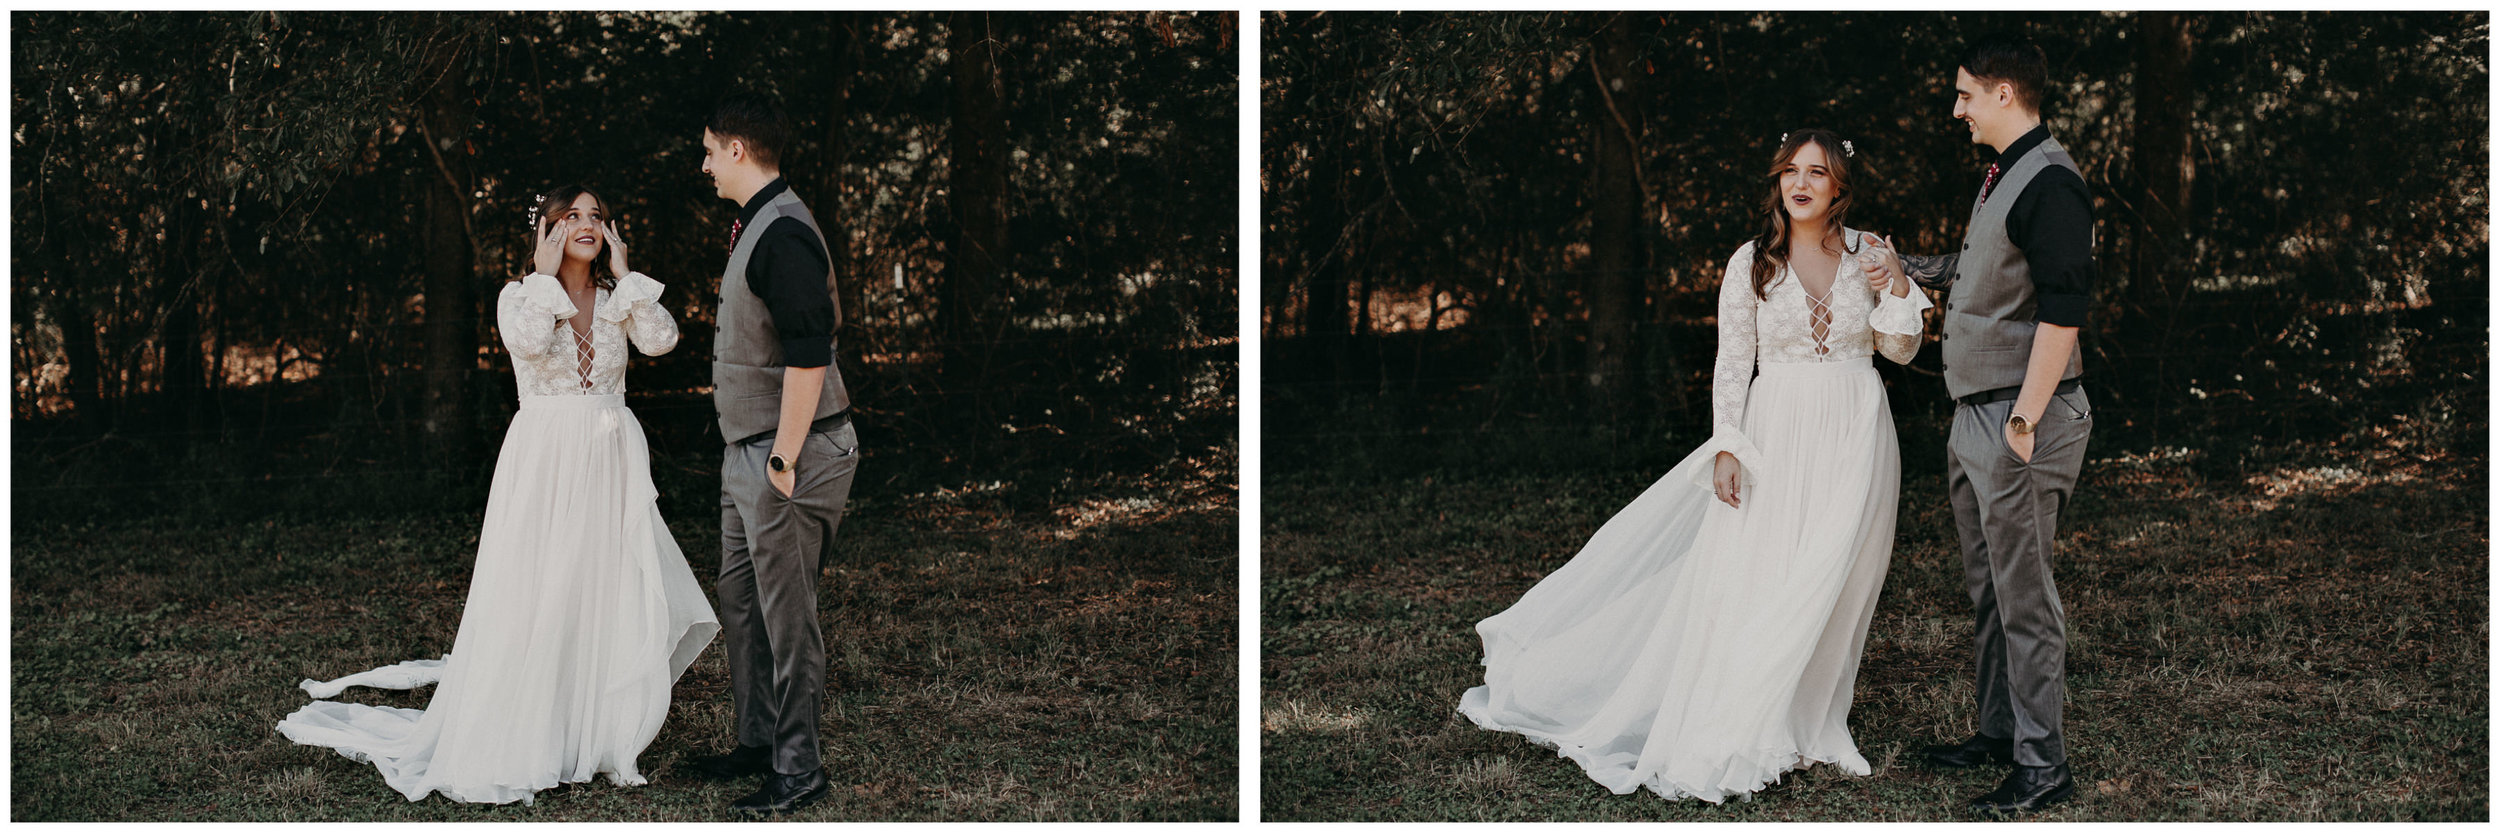 52 - Wedding first look : Atlanta wedding photographer .jpg